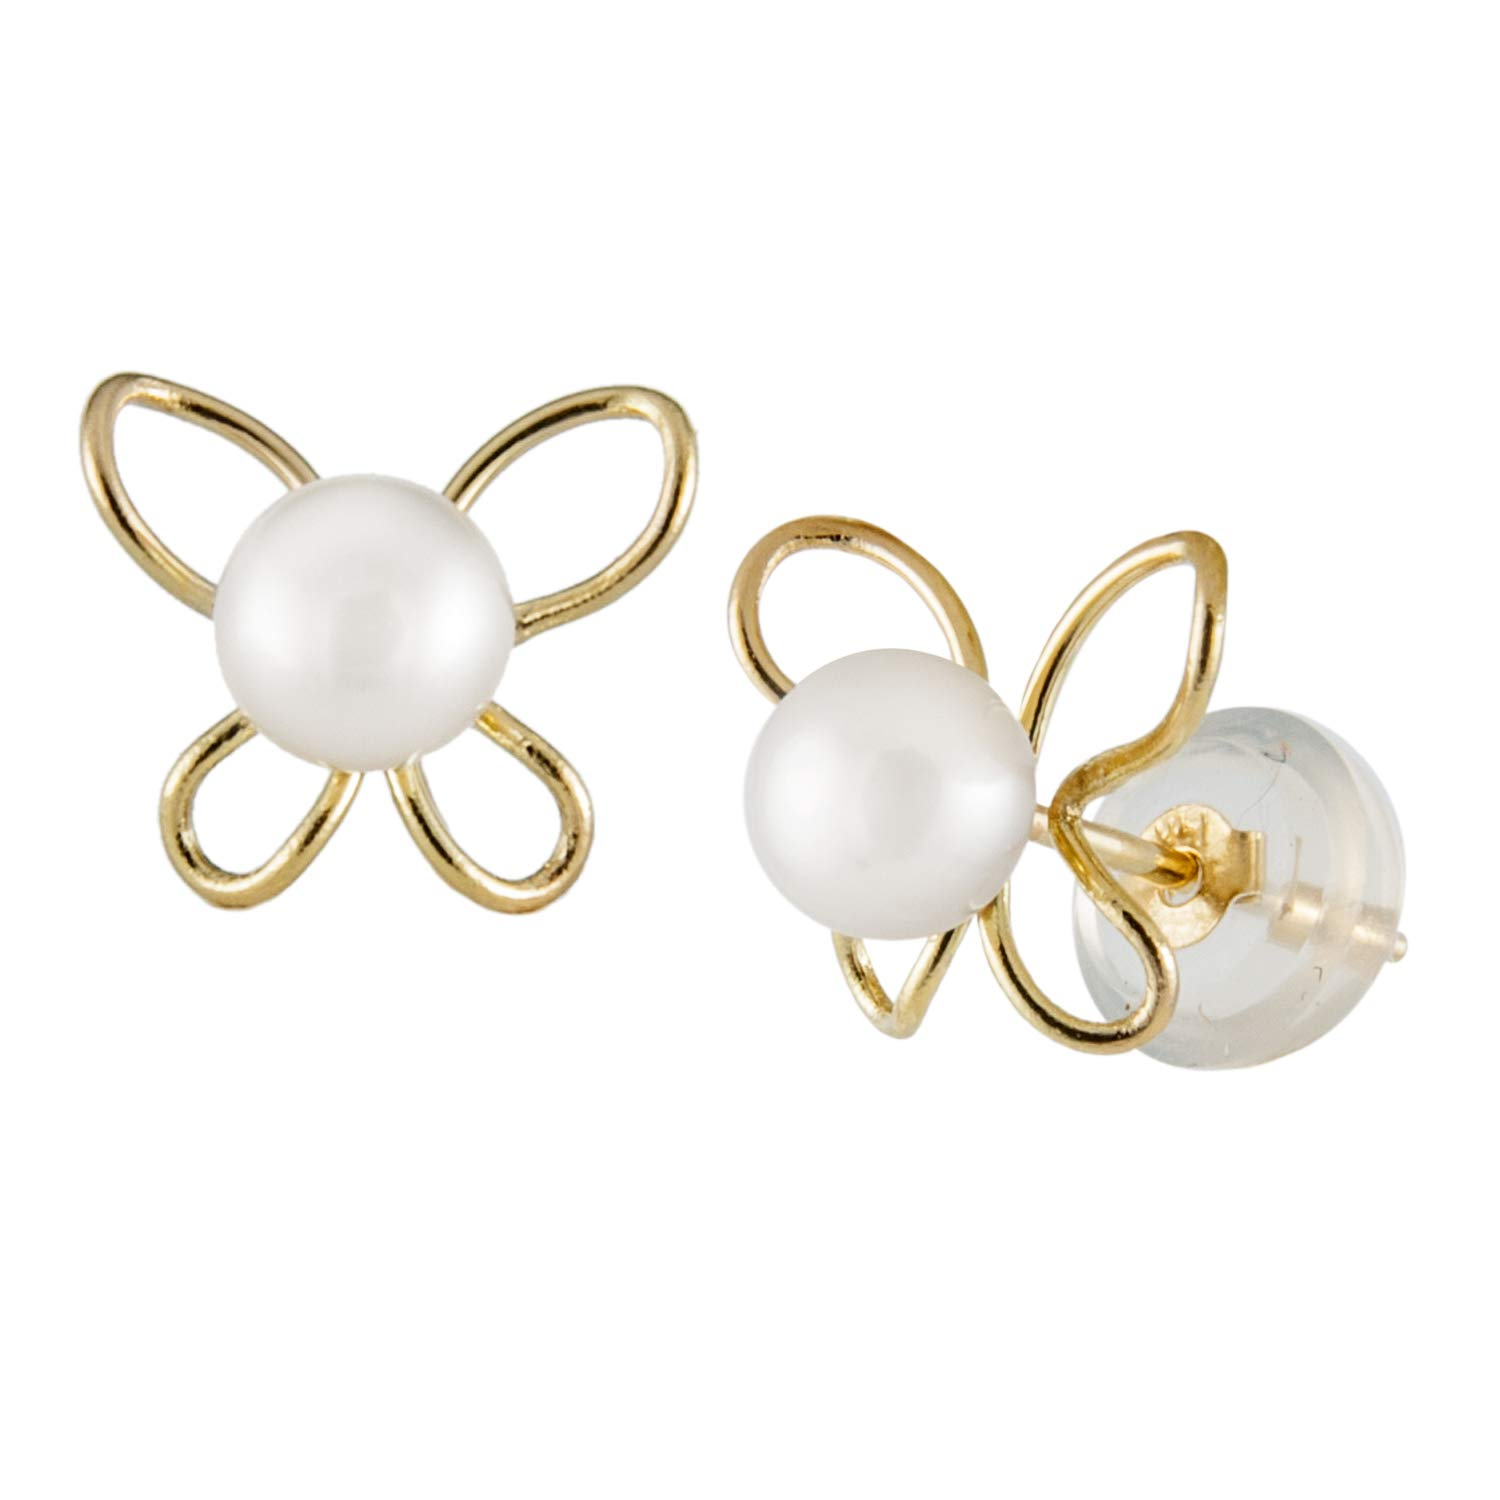 14k Yellow Gold Butterfly Stud Earrings with White 4-4.5mm Freshwater Pearls and 14K Yellow Gold Butterly Push Backs in Silicone